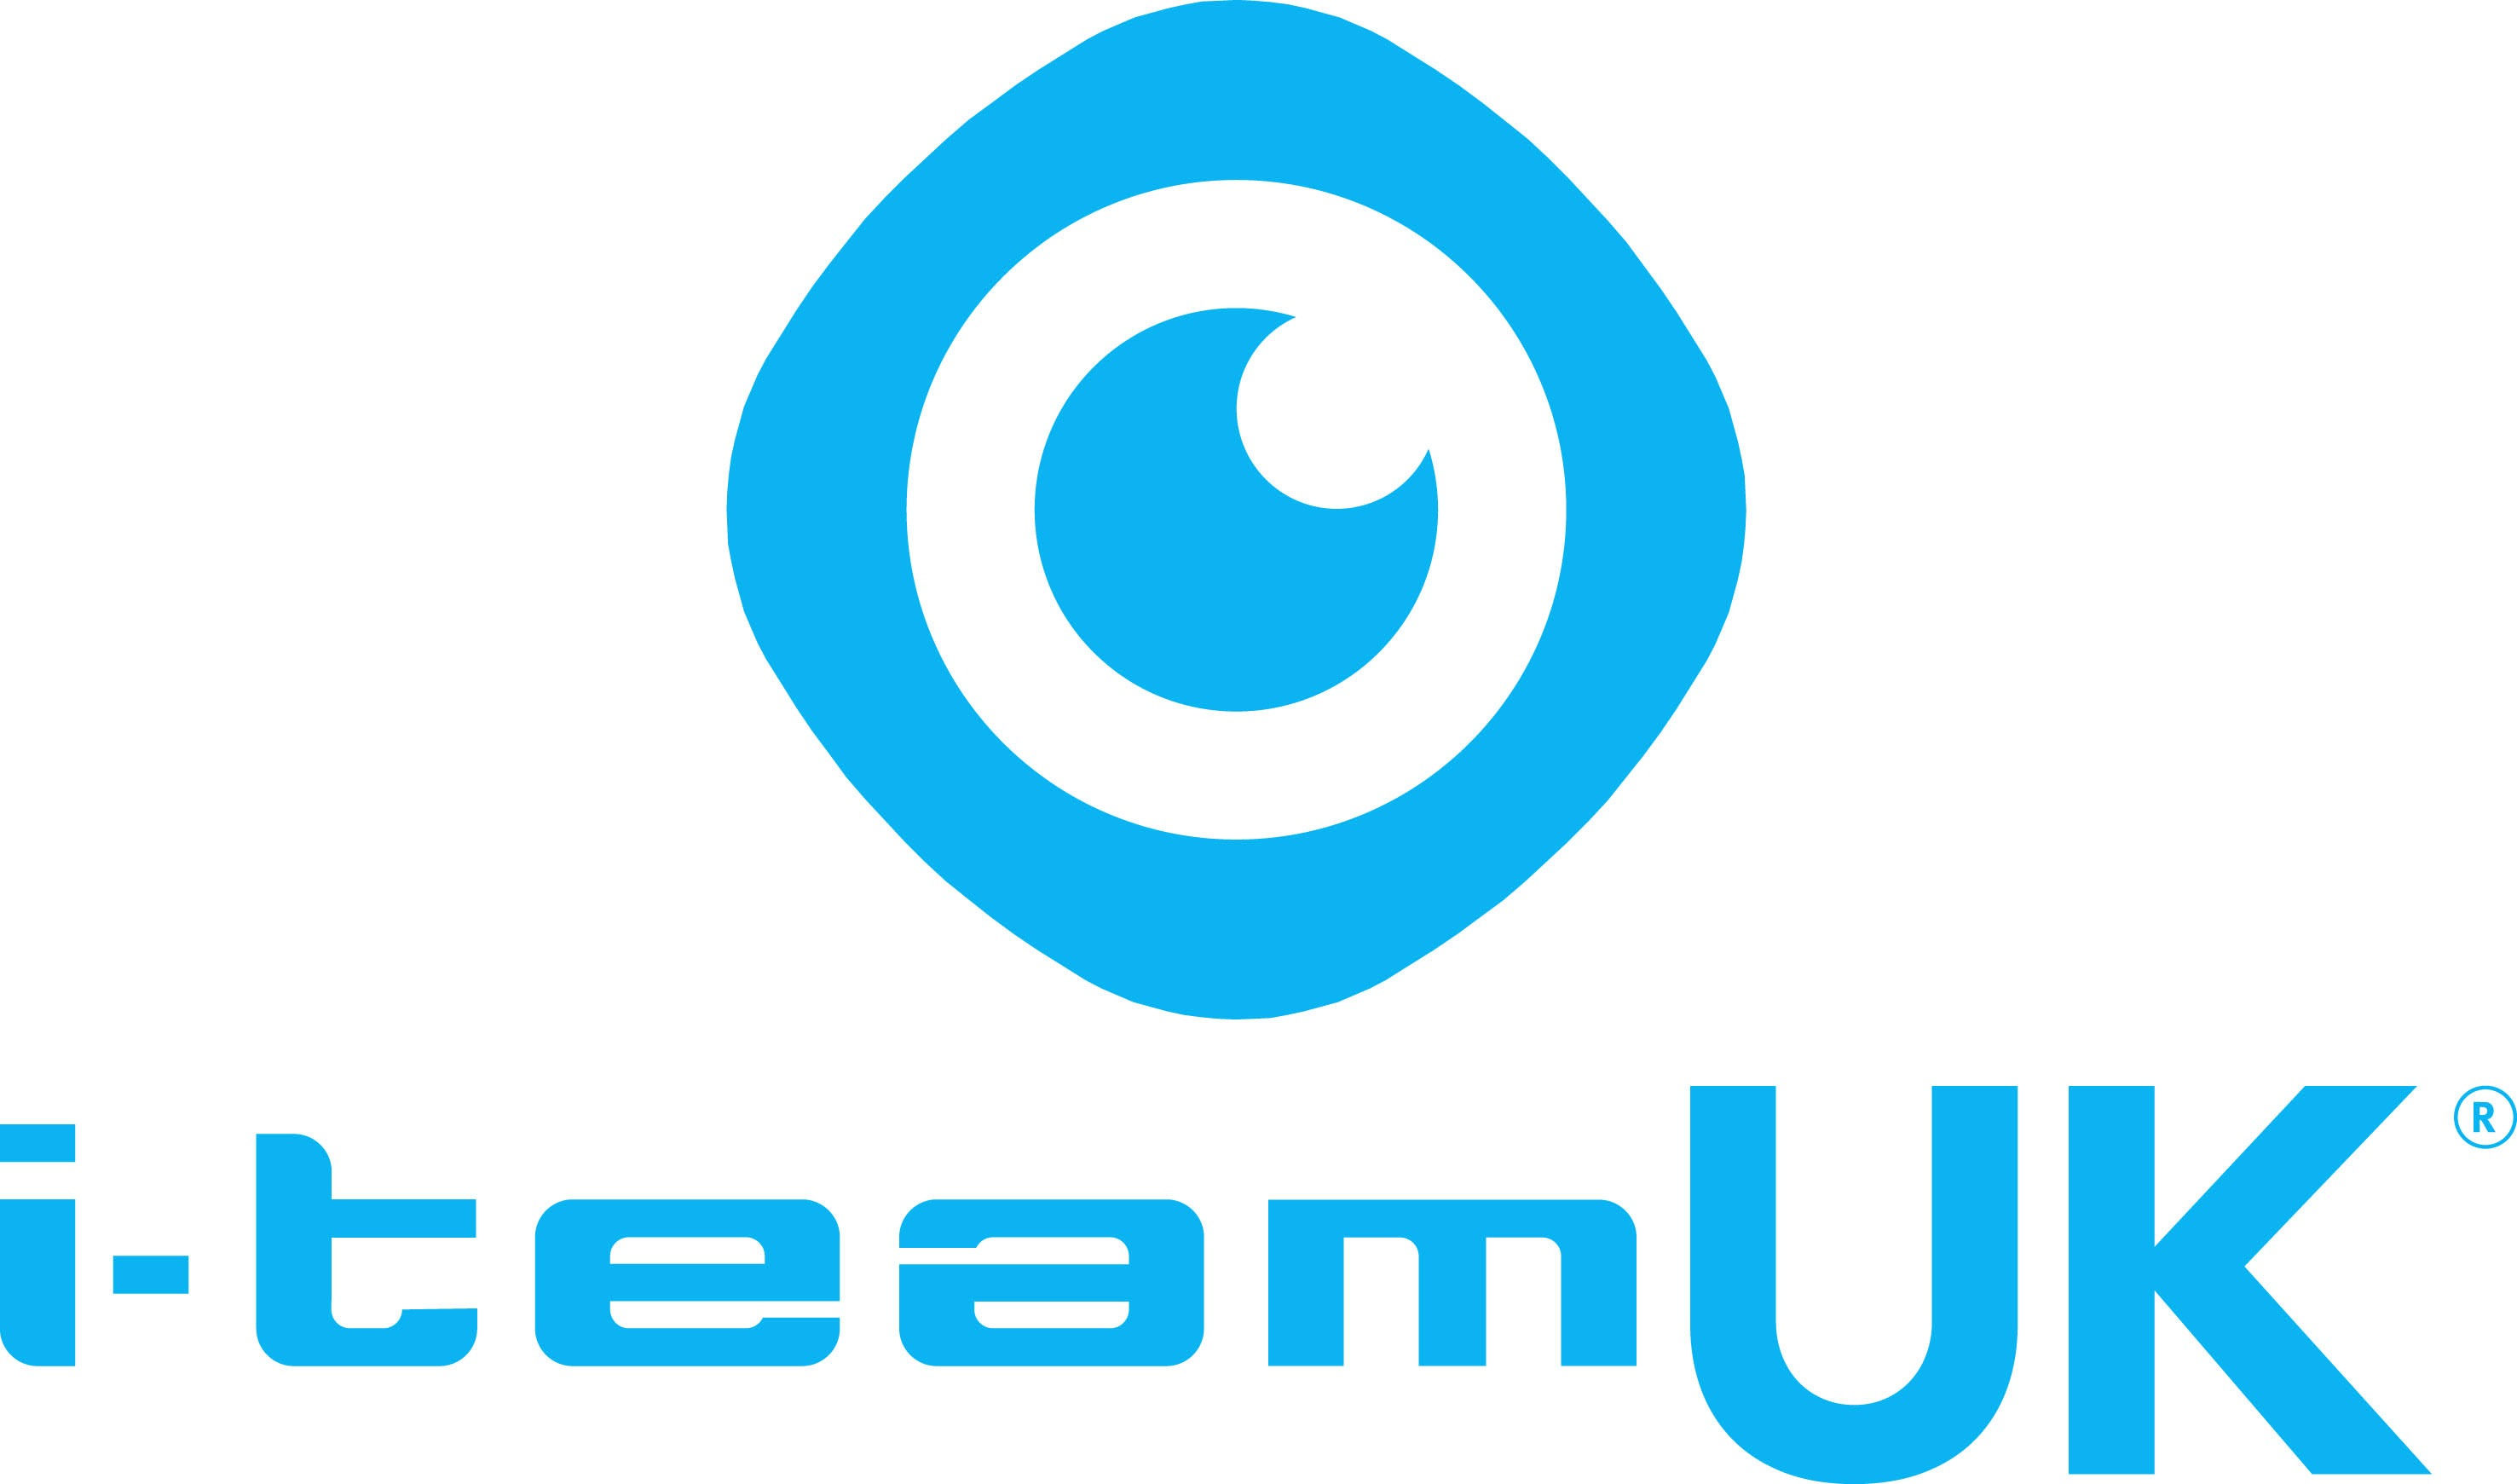 I-Team products